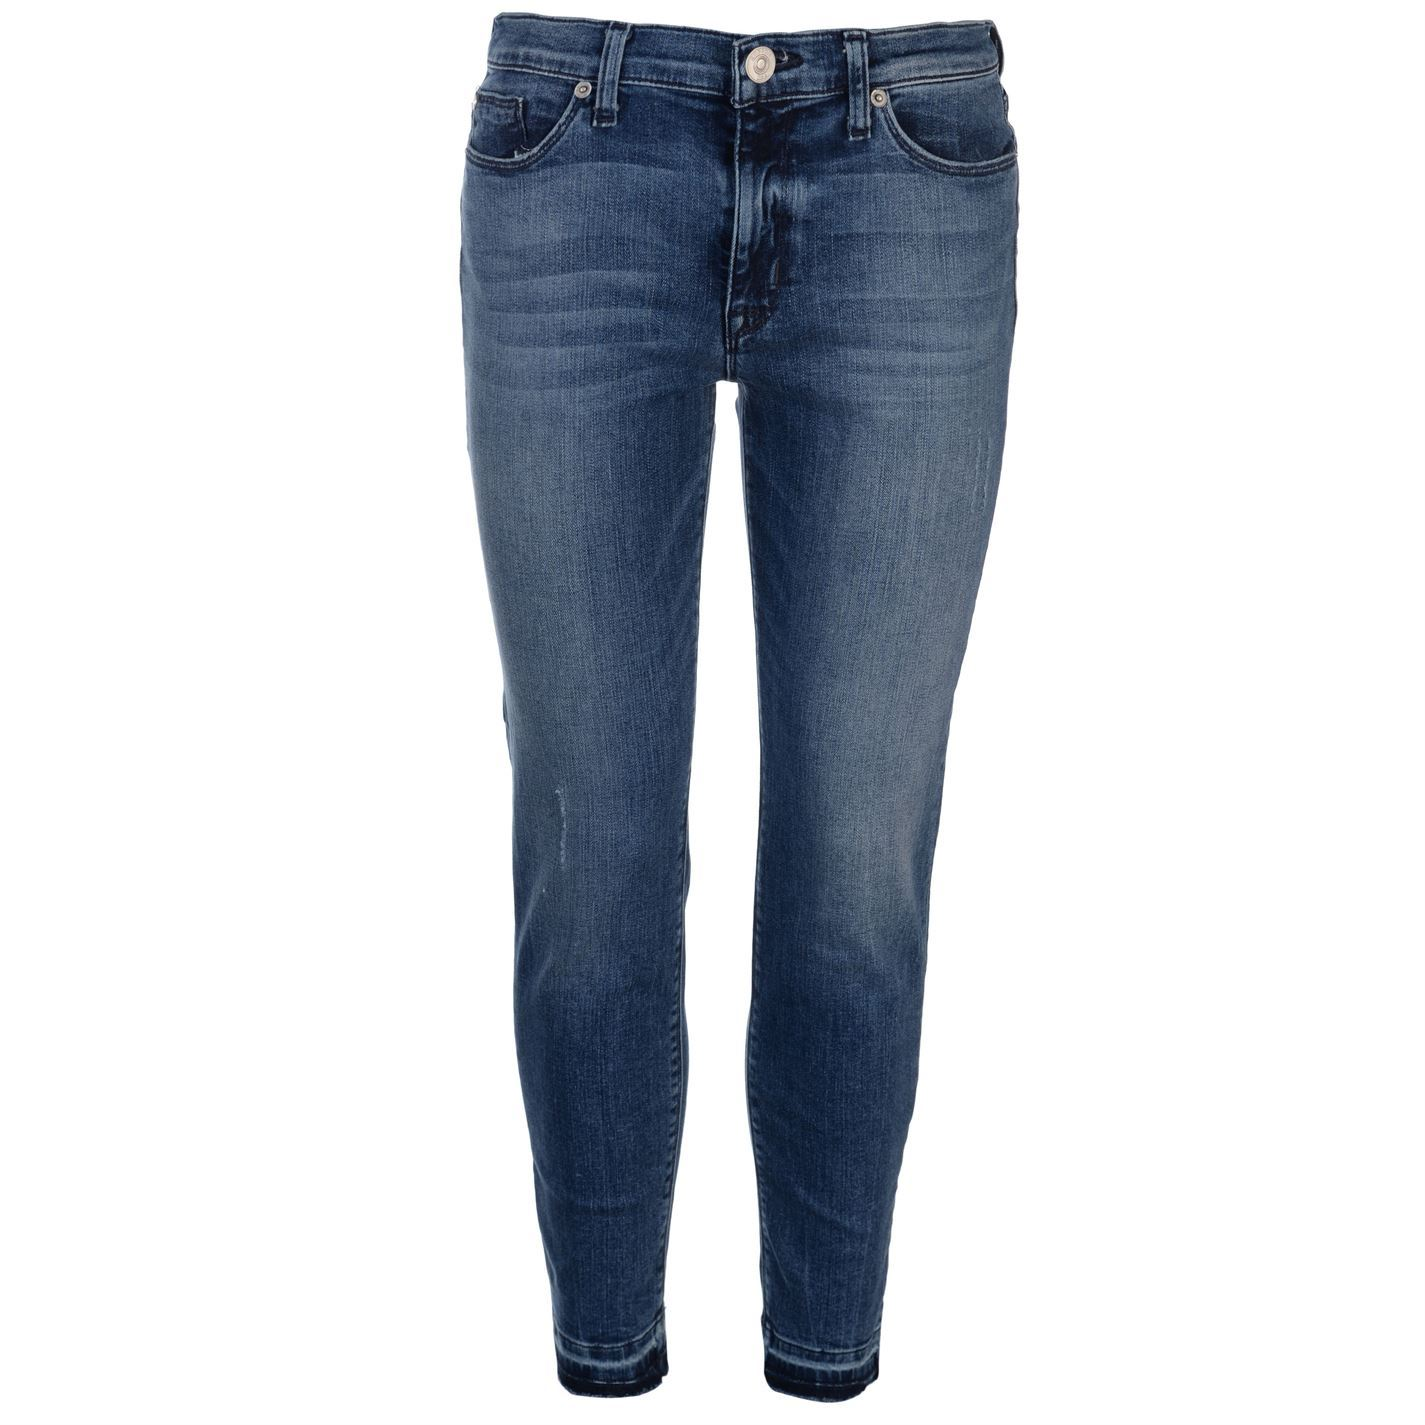 Hudson-Jeans-Womens-Mid-Rise-Skinny-Pants-Trousers-Bottoms-Zip-Slim-Fit-Stretch